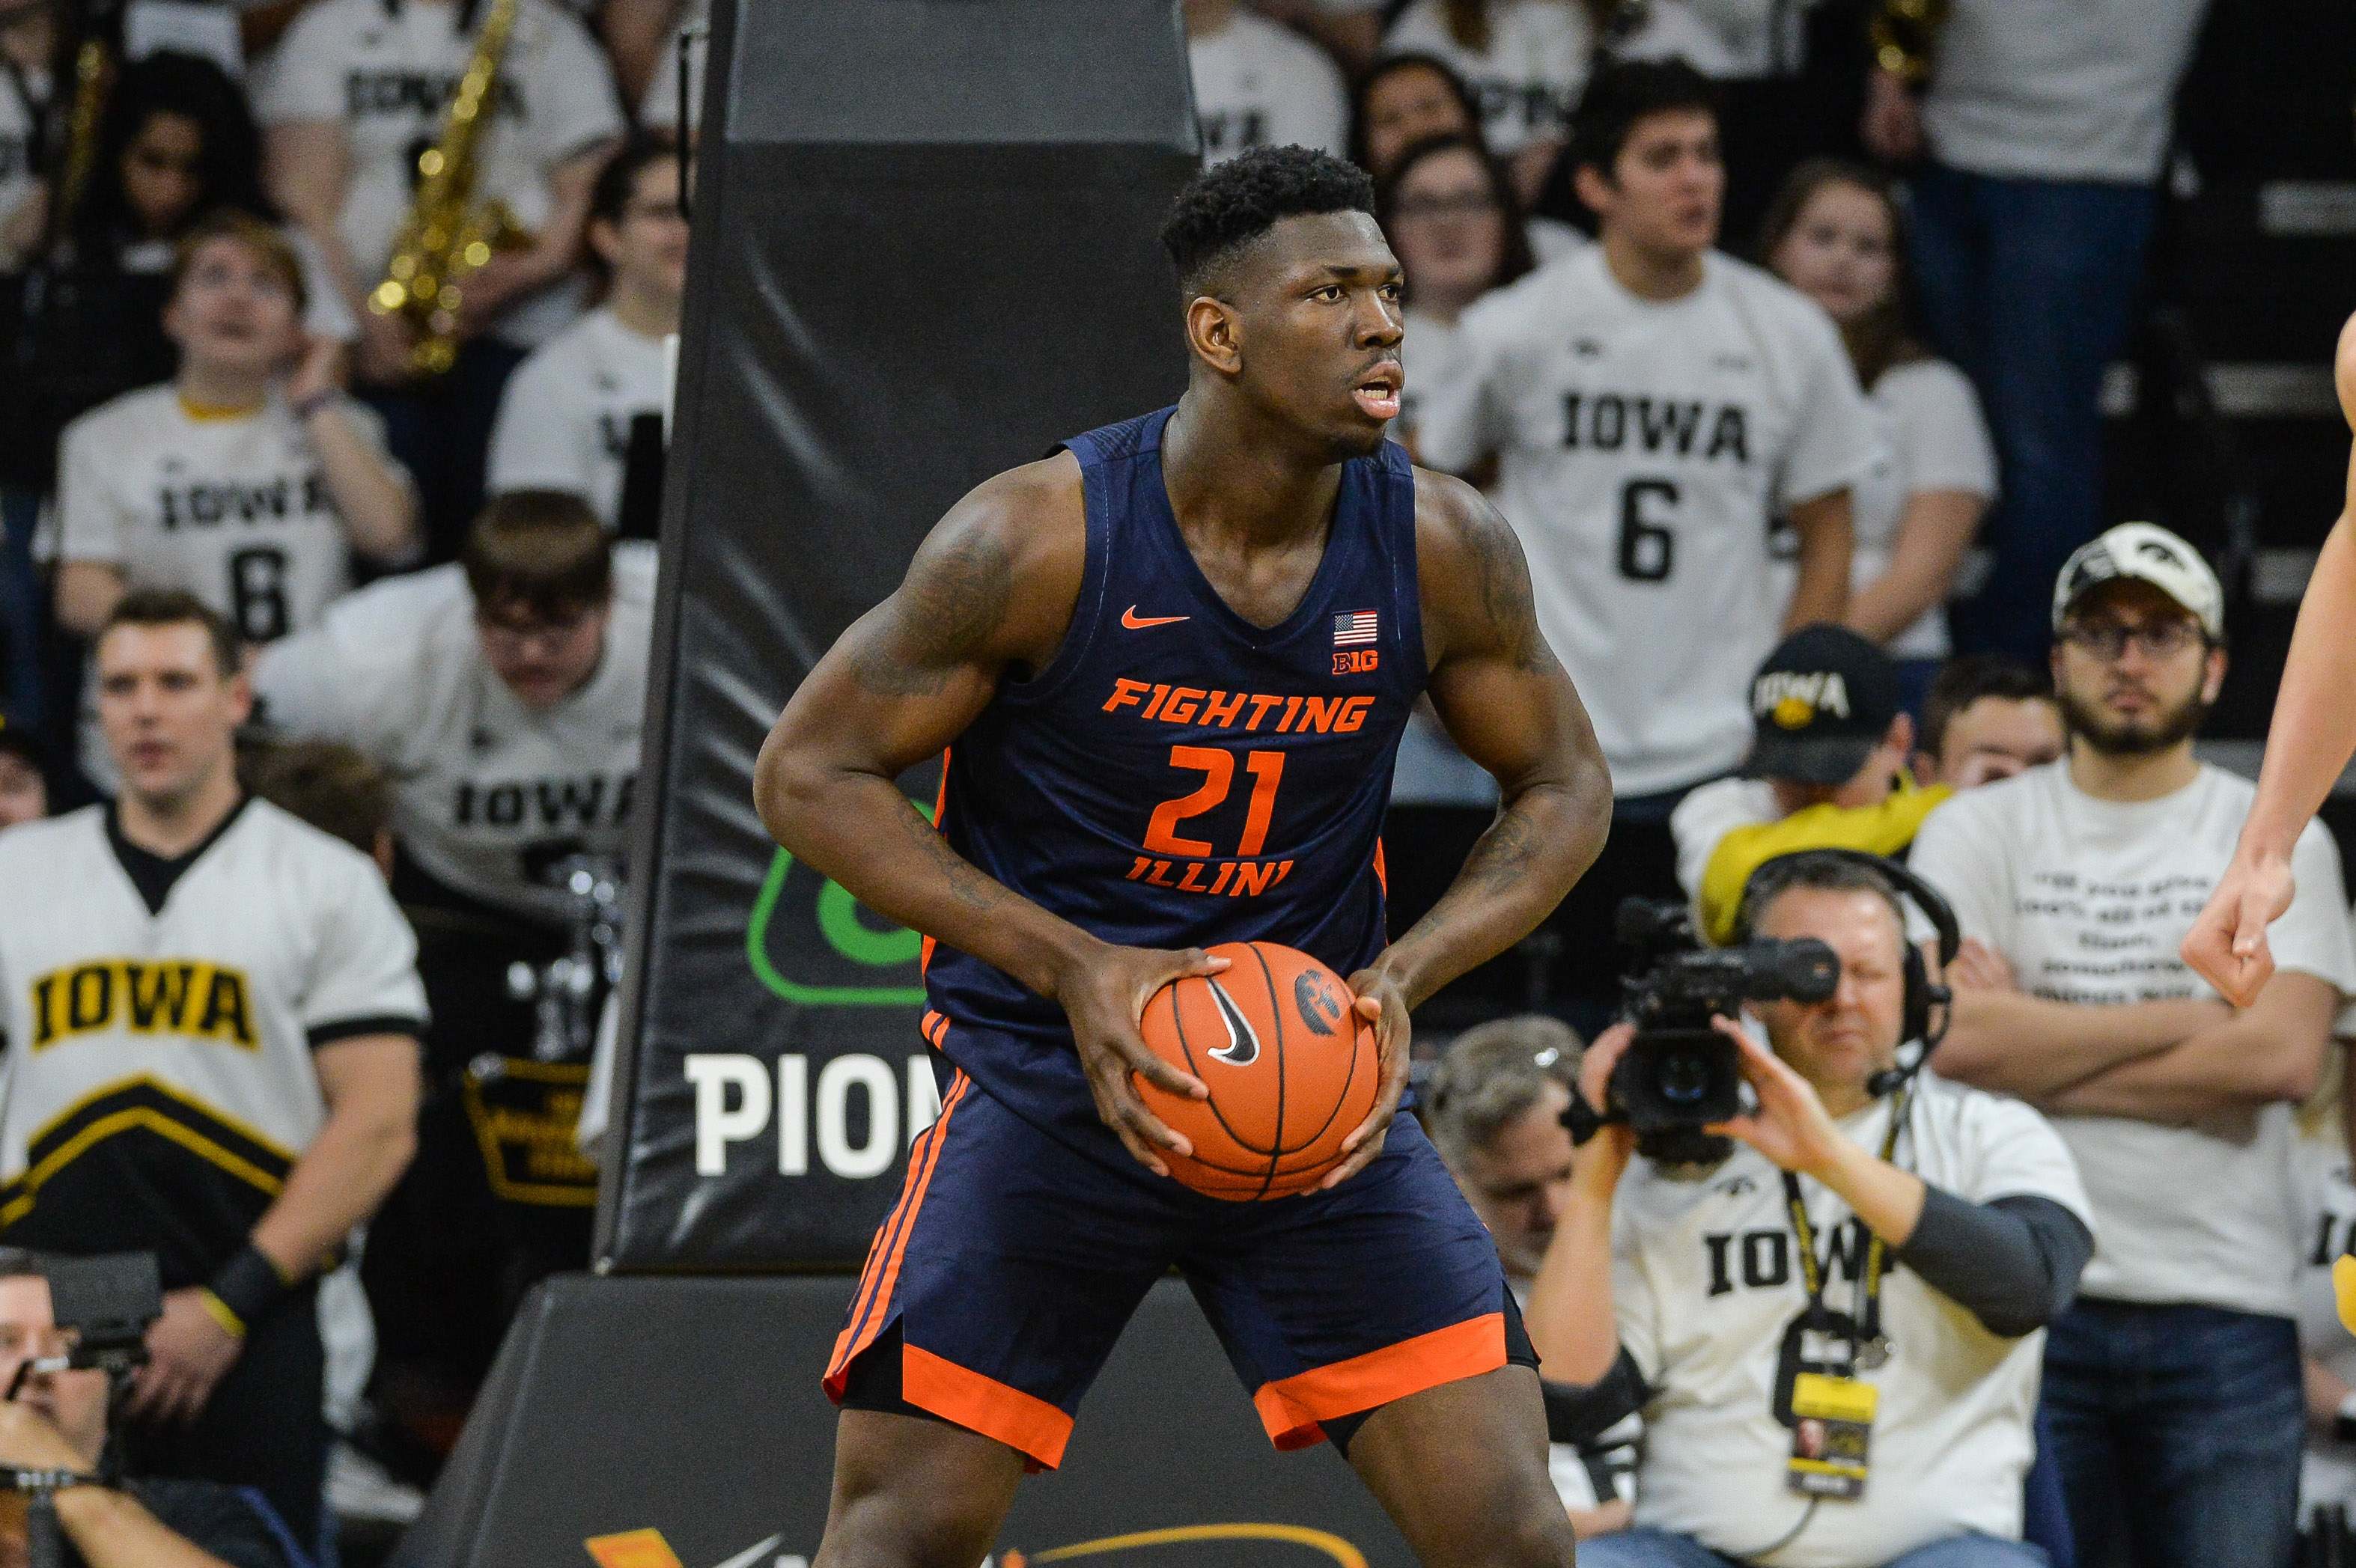 Feb 2, 2020; Iowa City, Iowa, USA; Illinois Fighting Illini center Kofi Cockburn (21) in action against the Iowa Hawkeyes at Carver-Hawkeye Arena.